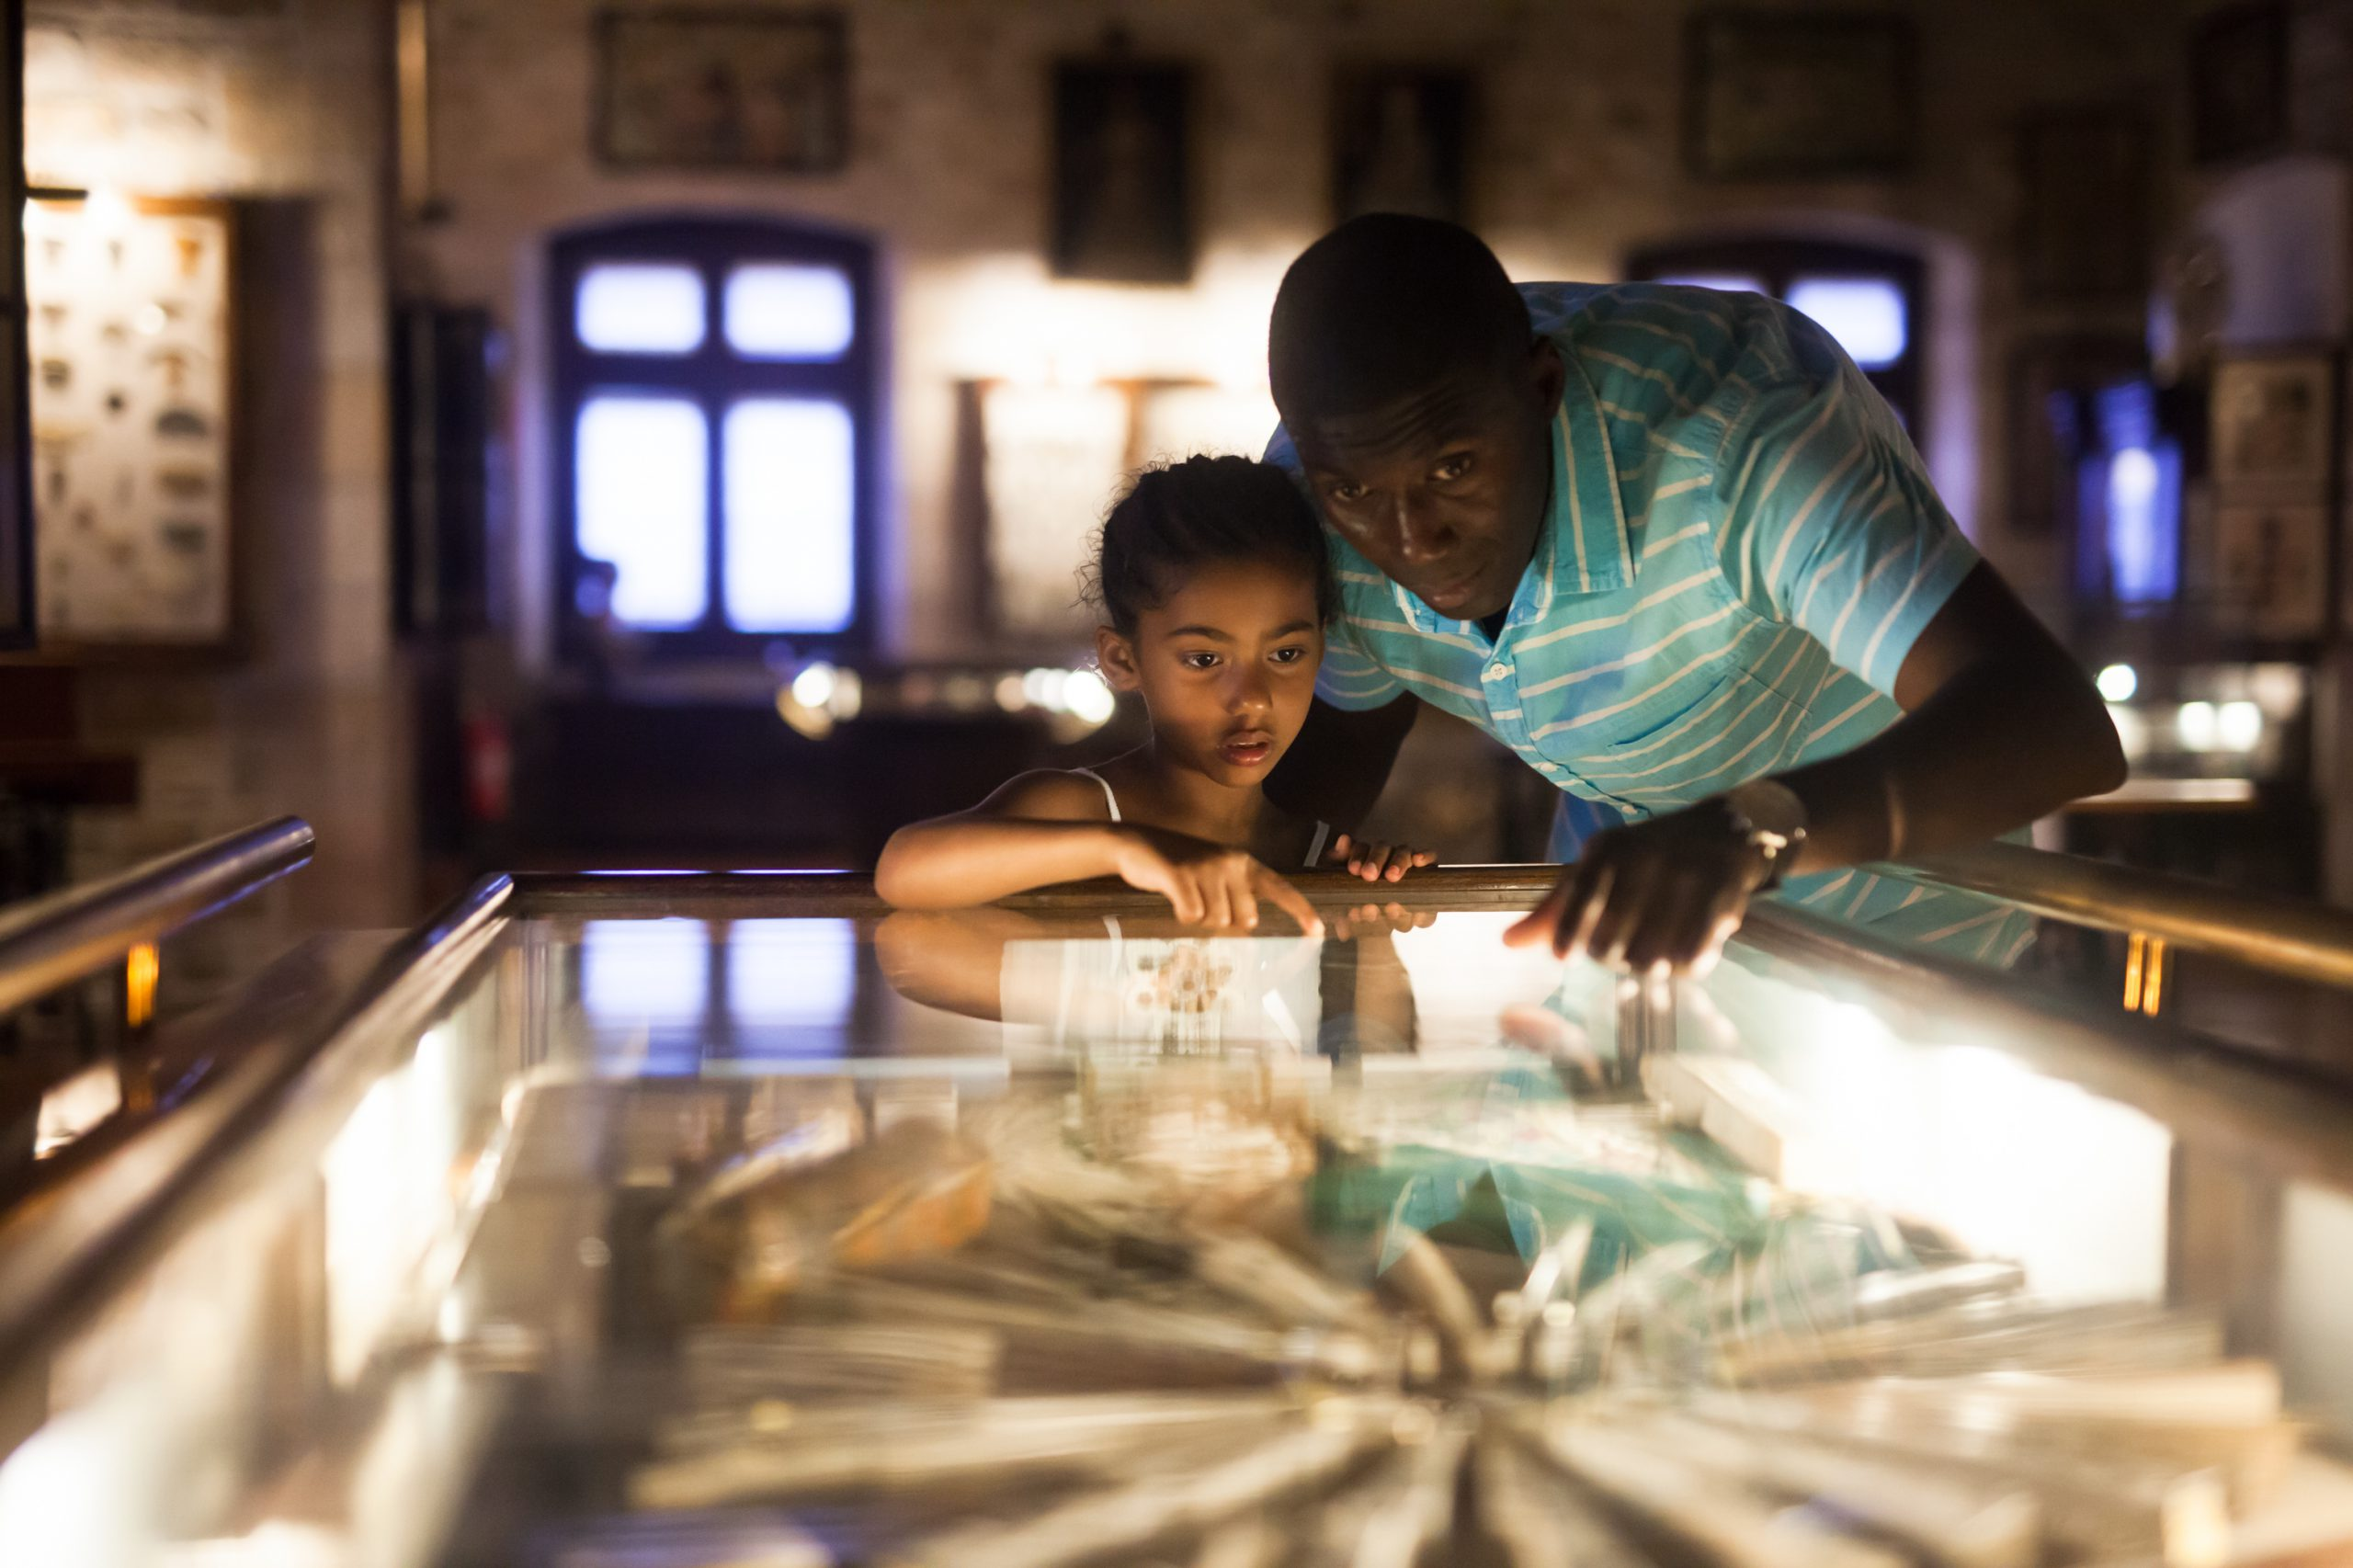 An adult and a child lean over a lit table covered with glass. They are pointing at the exhibit.